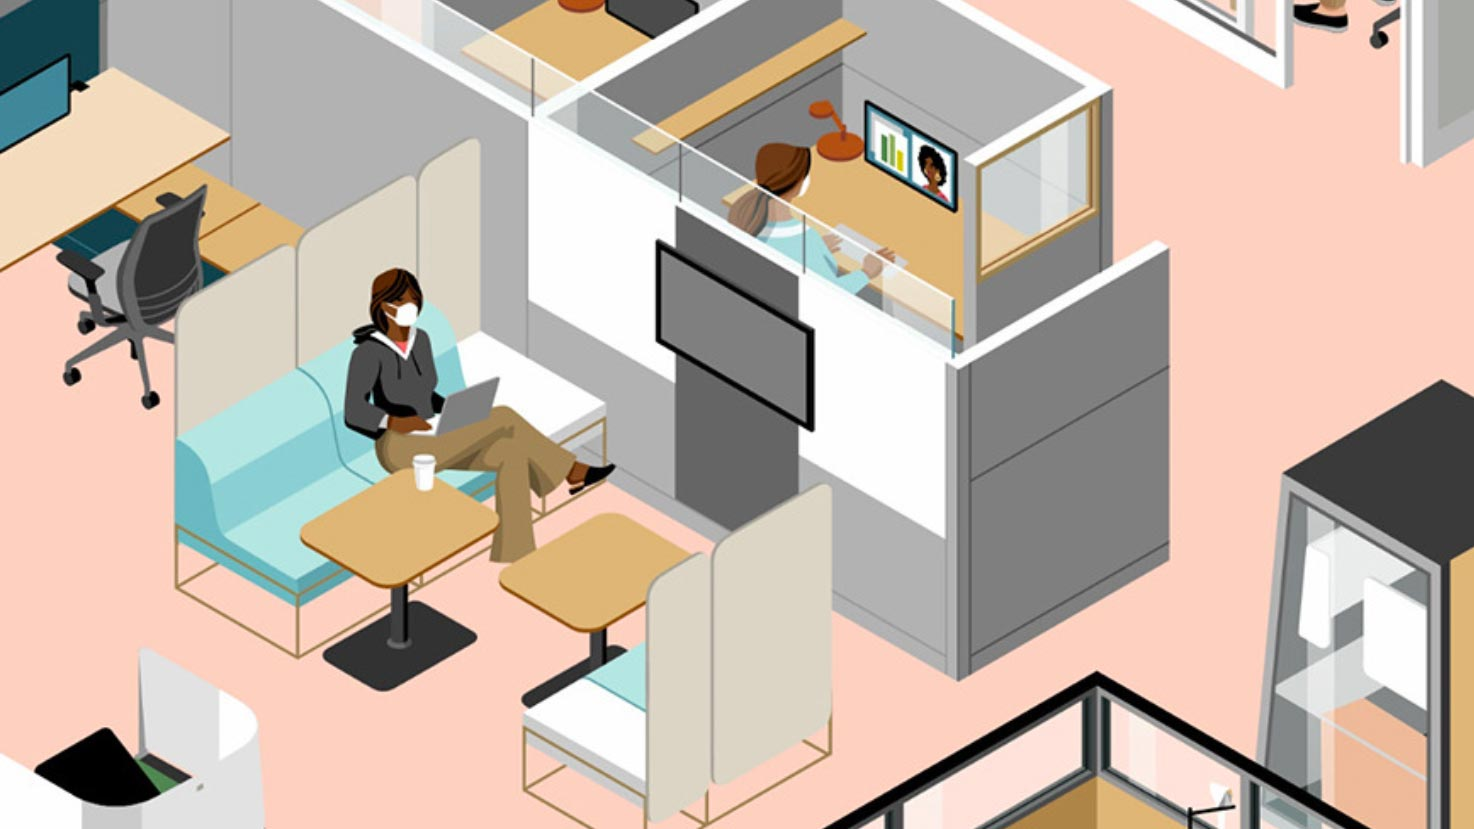 NBS Steelcase Design for Productivity